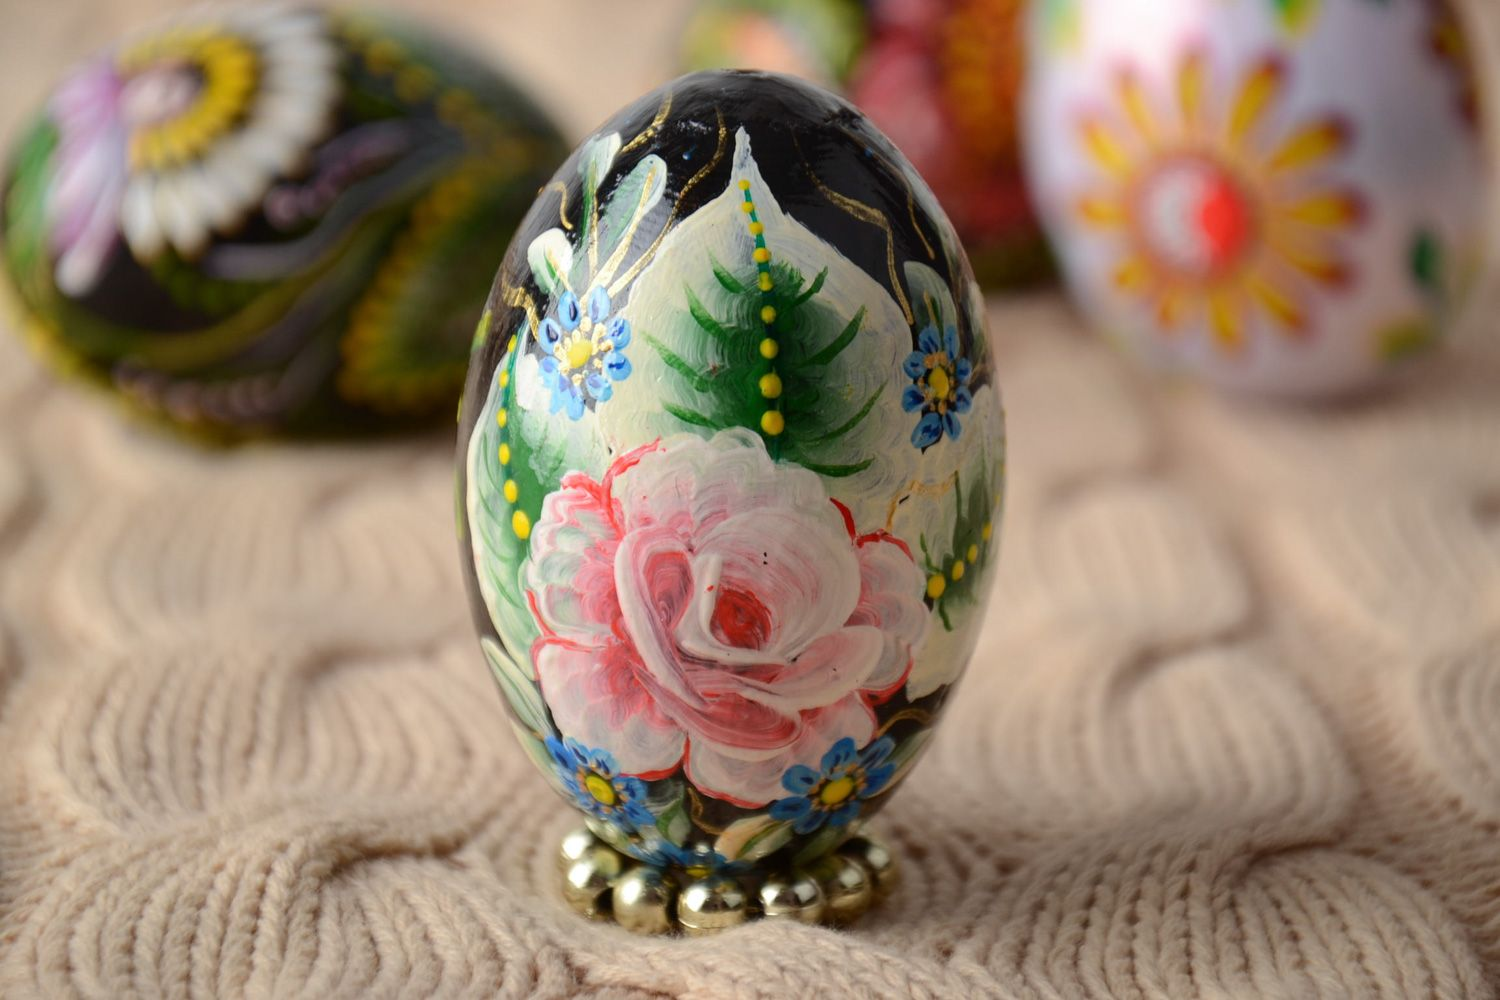 Handmade Carved Wooden Easter Egg Decorated Using One